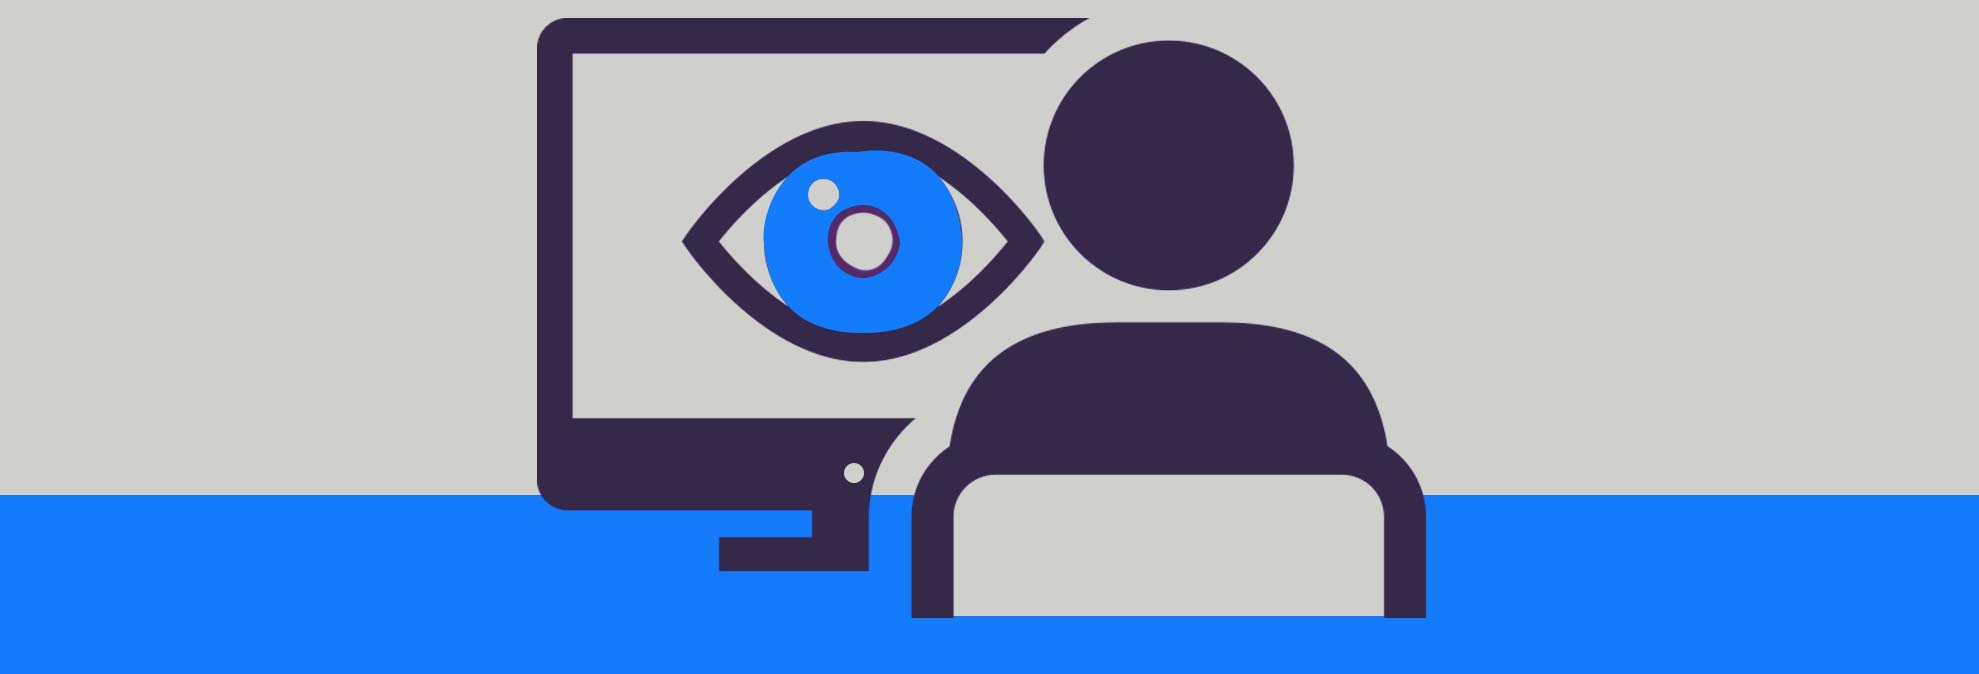 How to Control Web Cookies and Boost Online Privacy